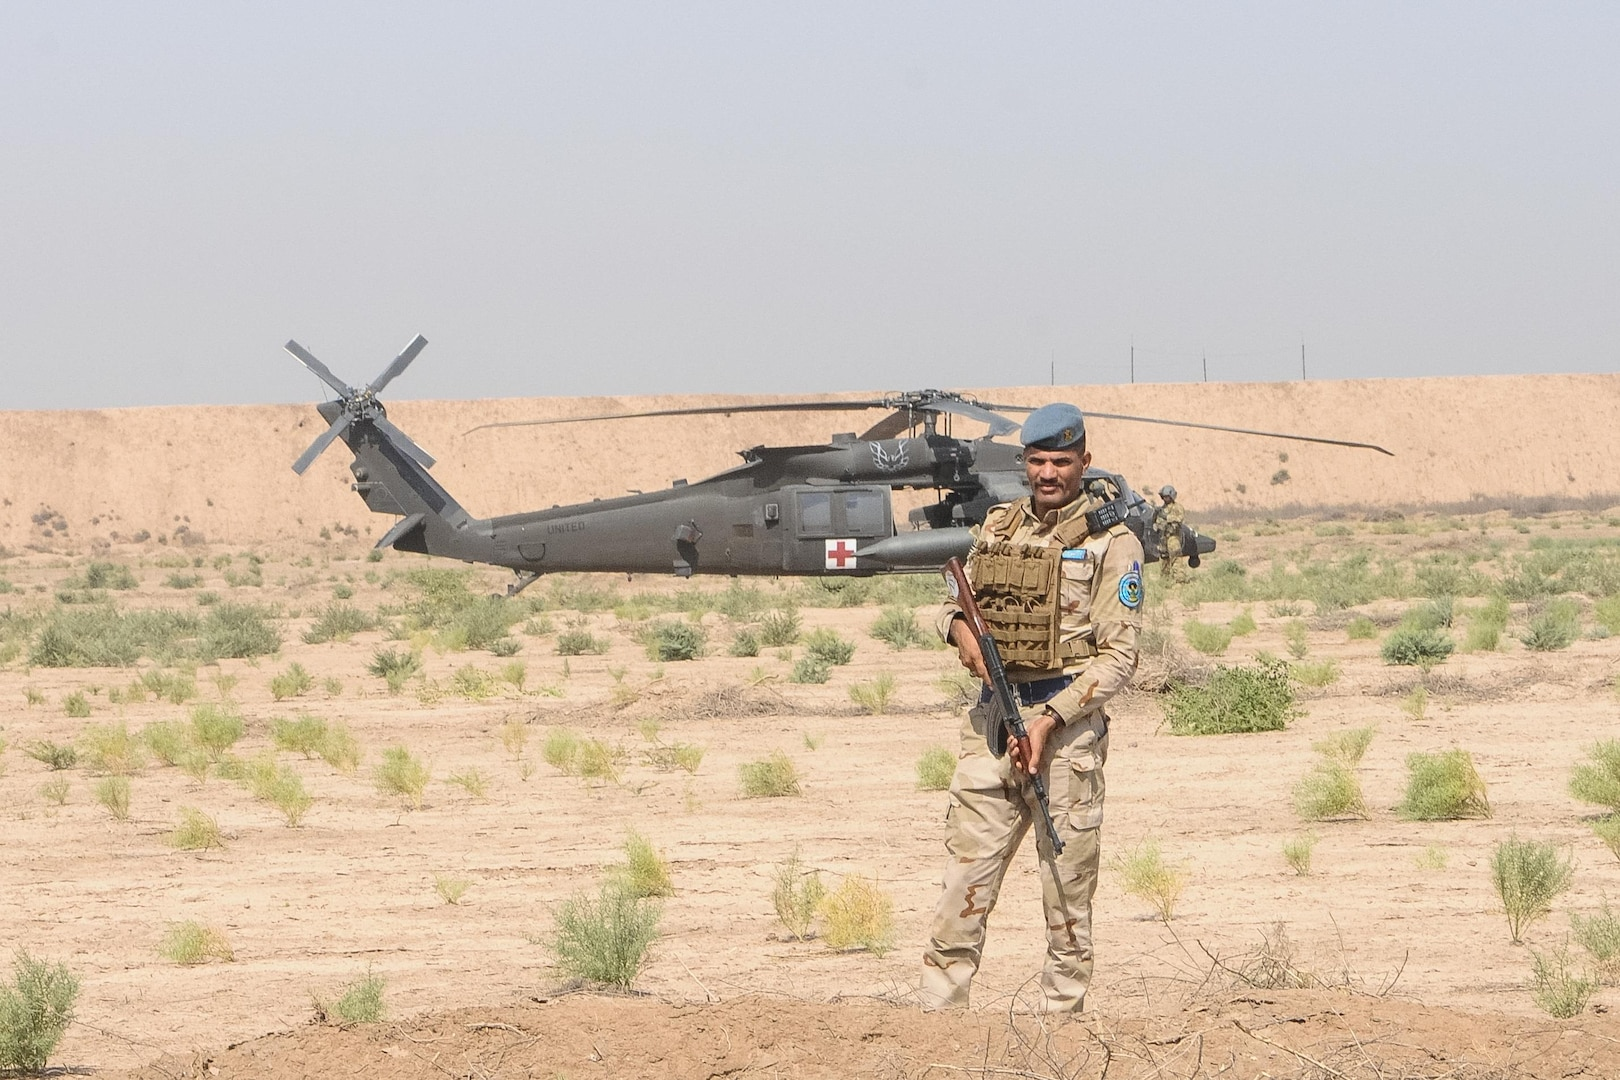 A member of the Iraqi Security Forces establishes a security perimeter around an HH-60M Black Hawk helicopter from the 2-149th General Support Aviation Battalion, Task Force Rough Riders, during the aerial response force exercise at Camp Taji Military Complex, Iraq, August 13,2017. The ISF provided security to an HH-60M Black Hawk helicopter that had been grounded due to simulated maintenance issues. This training is part of the overall Combined Joint Task Force – Operation Inherent Resolve building partner capacity mission which focuses on training and improving the capability of partnered forces fighting ISIS. CJTF-OIR is the global Coalition to defeat ISIS in Iraq and Syria. (US Army Photo by Capt. Stephen James)